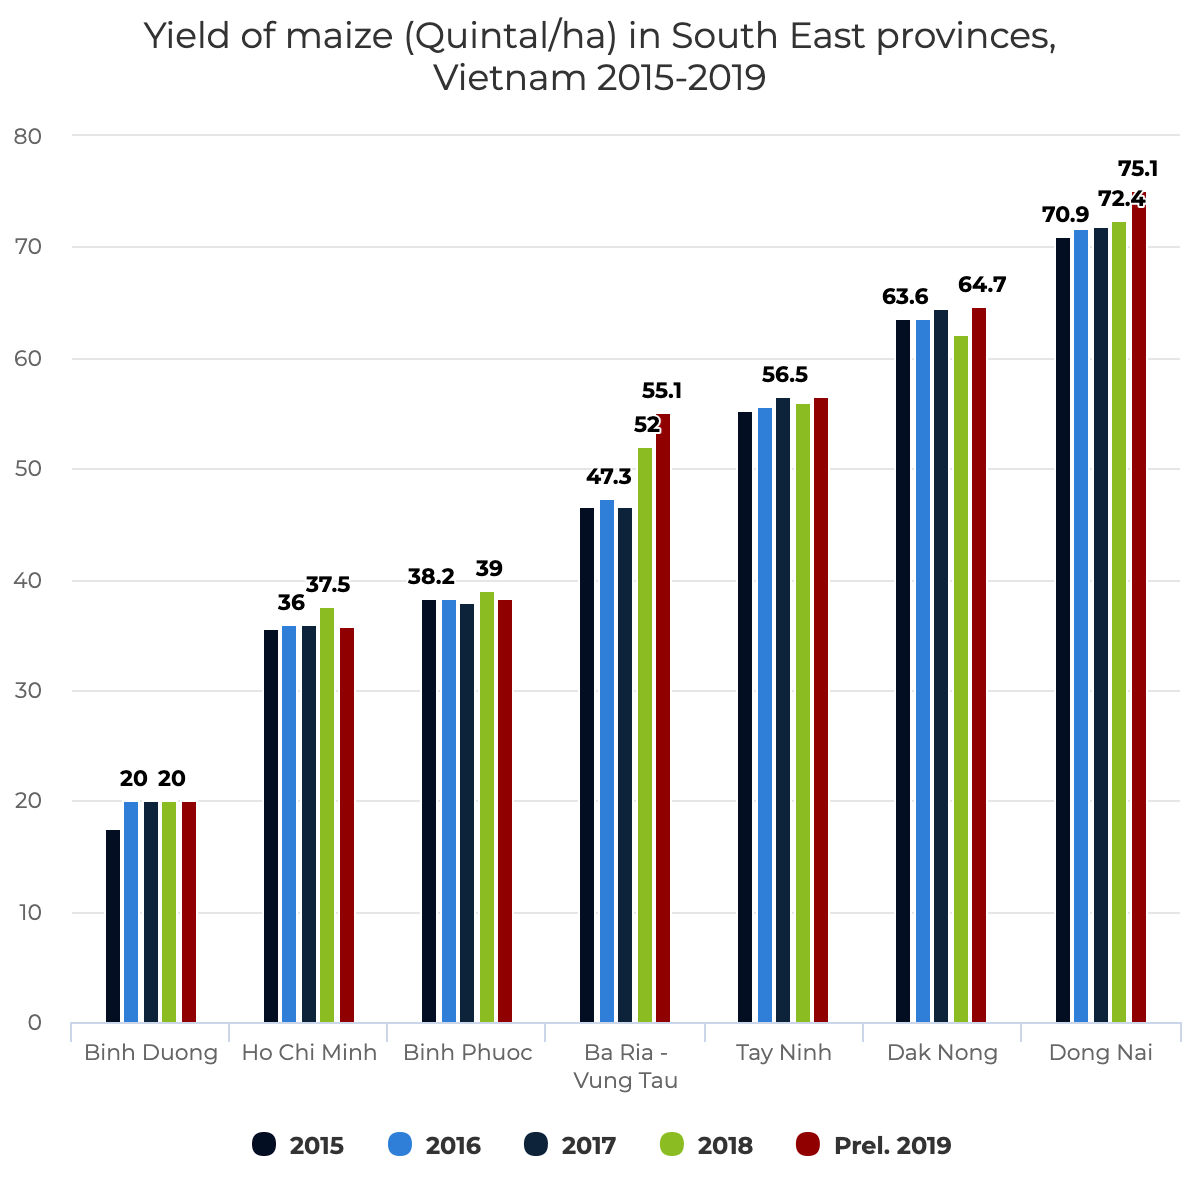 Yield of maize (Quintal/ha) in South East provinces, Vietnam 2015-2019